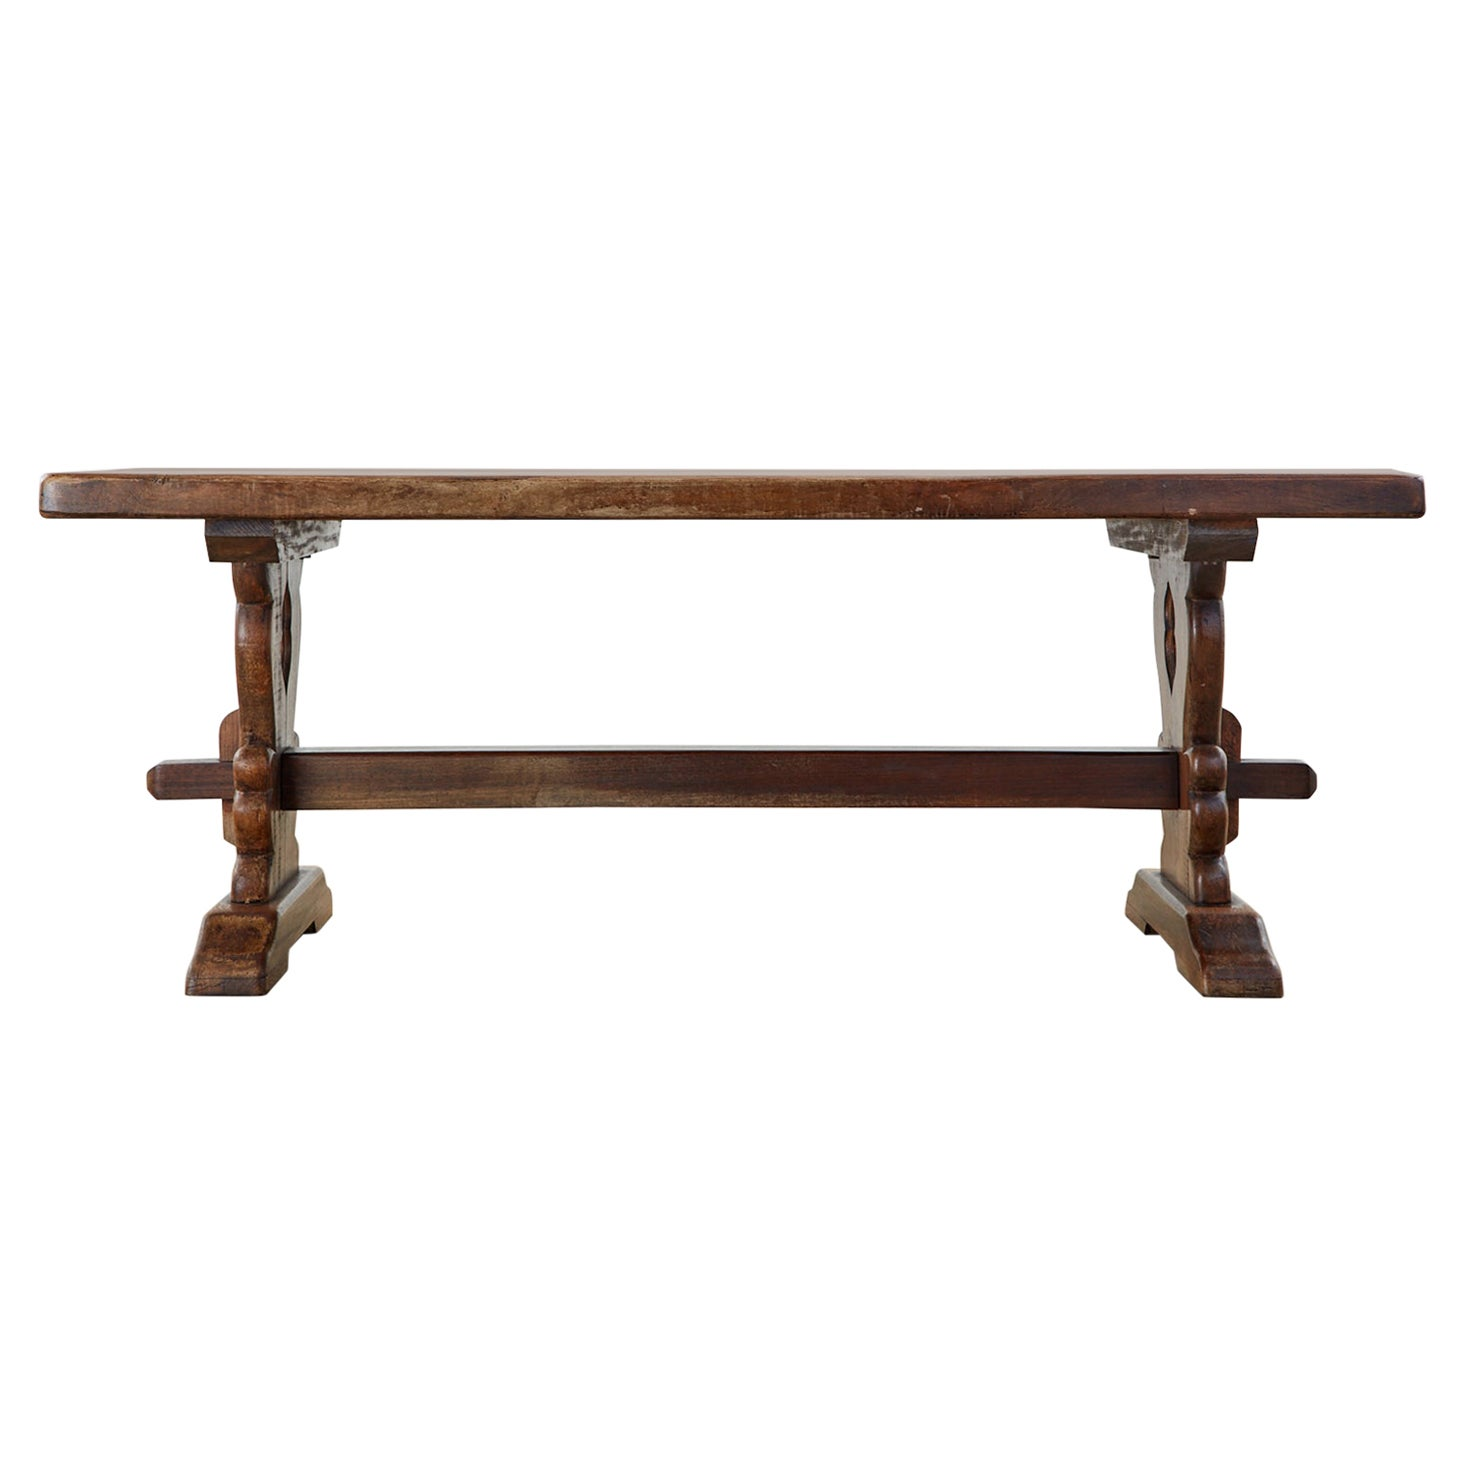 19th Century Country French Oak Farmhouse Trestle Dining Table